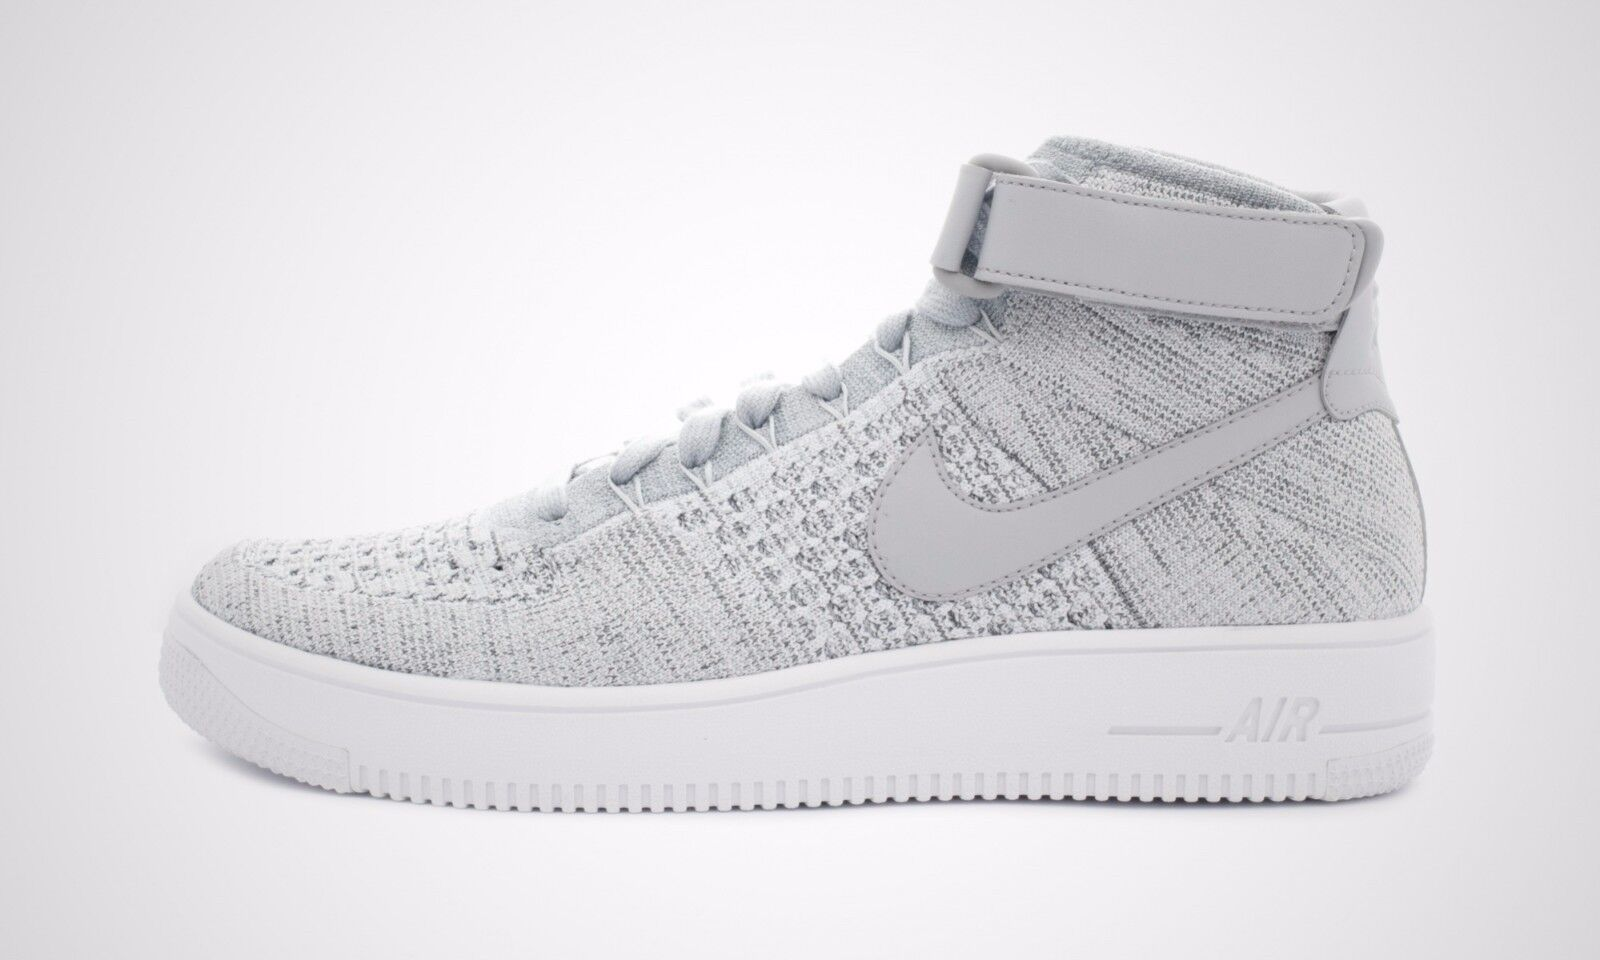 8162247c Купить NIB Nike Air Force 1 Ultra Mid Flyknit на eBay.com из Америки ...